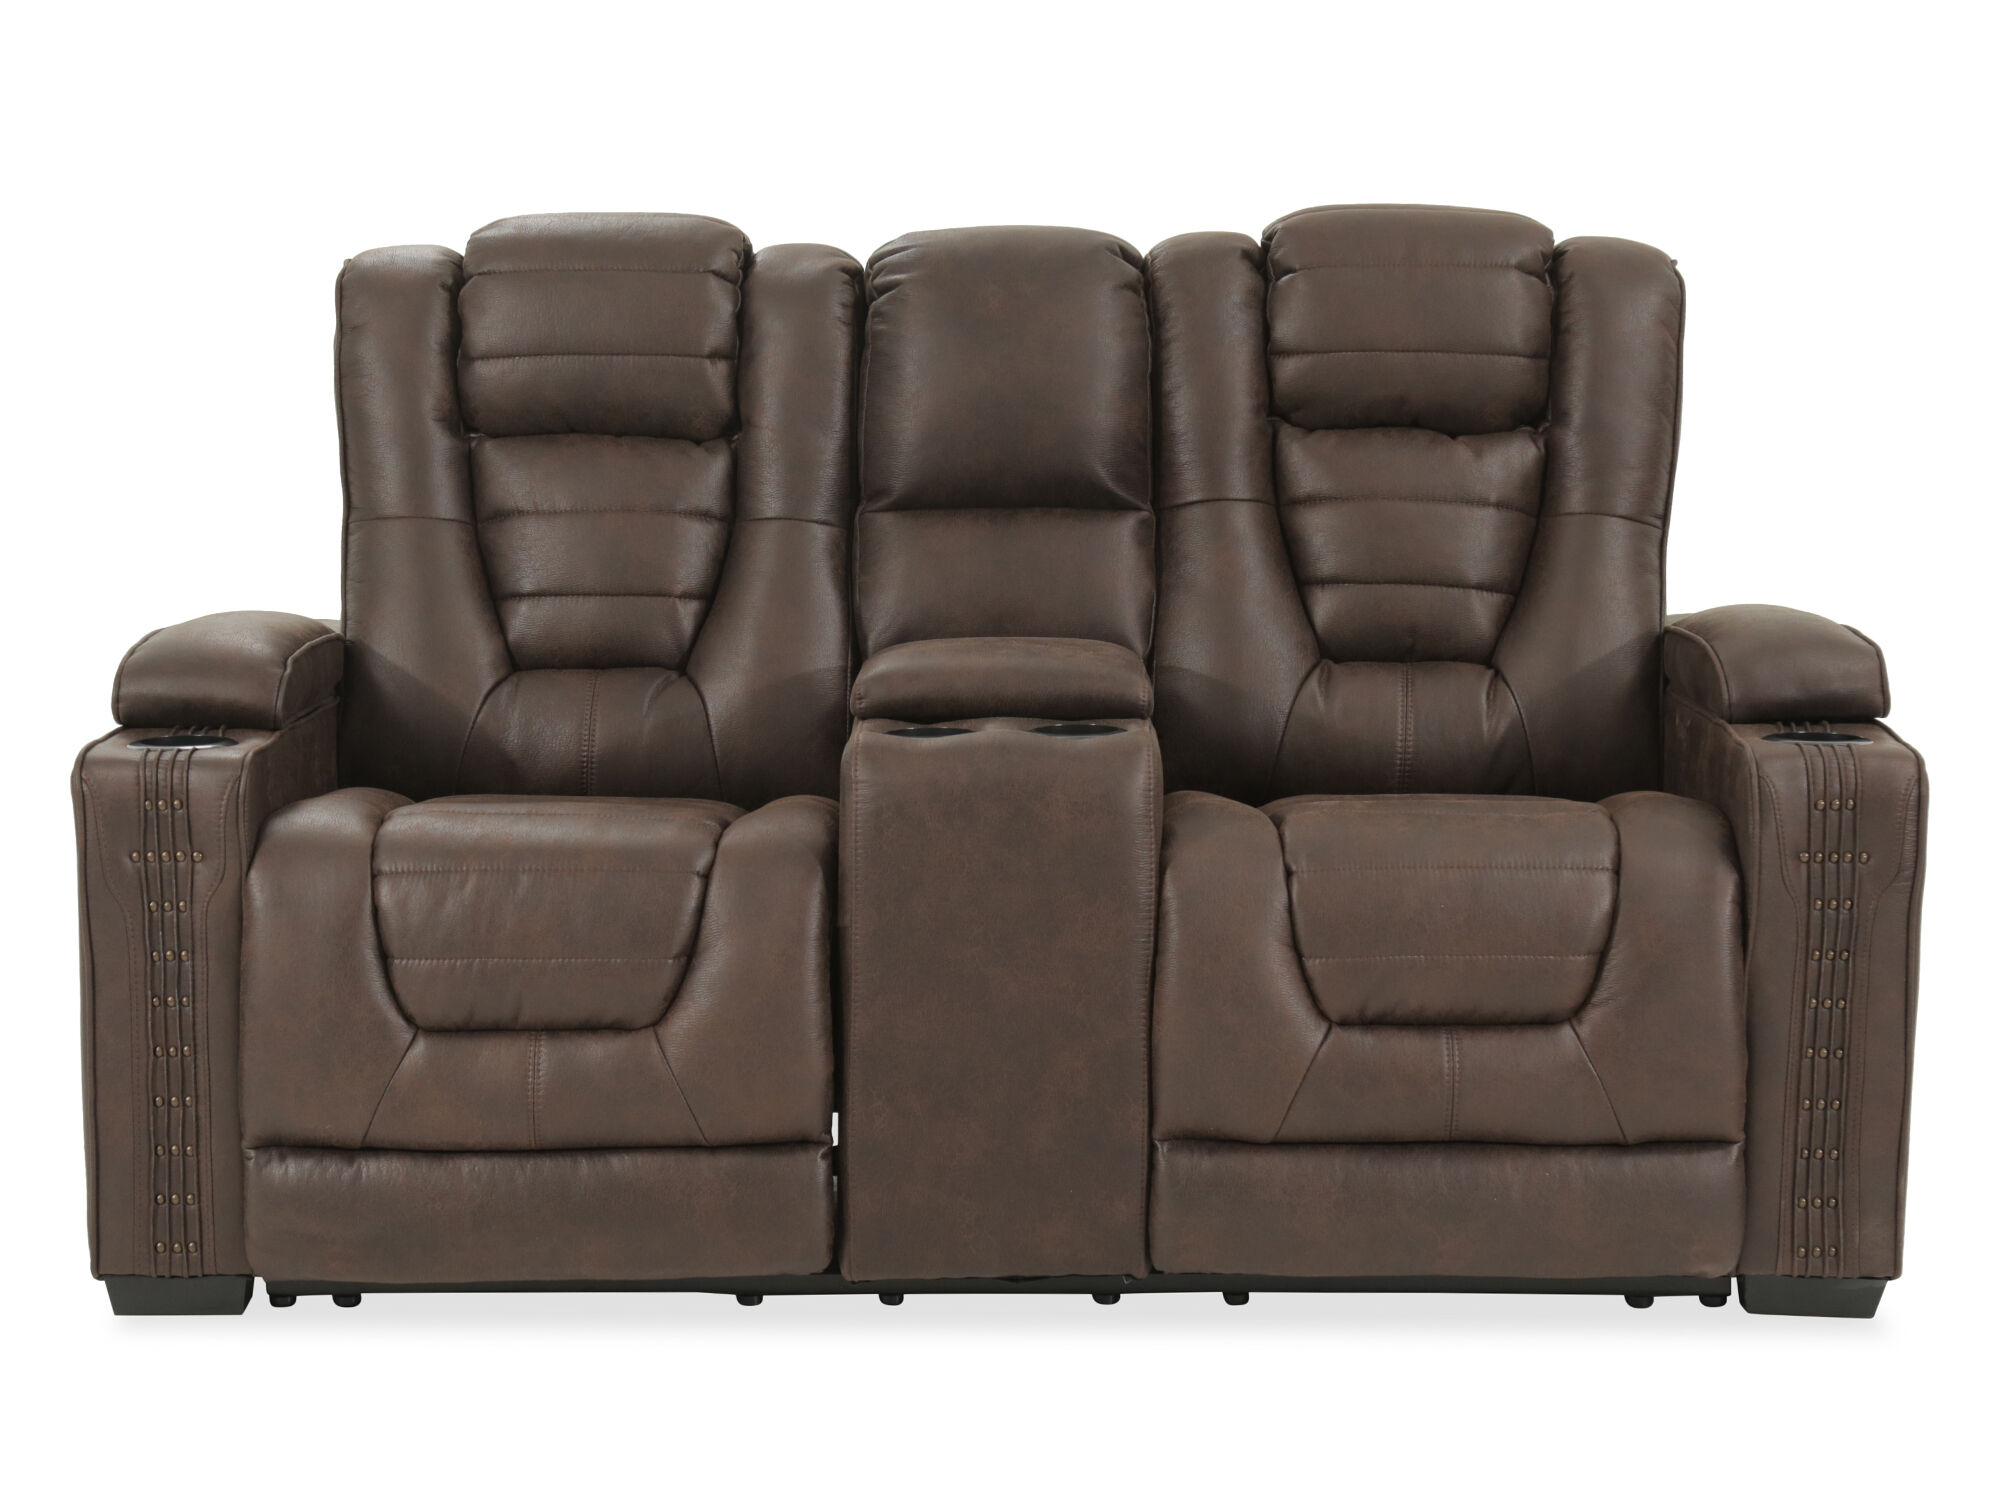 Power Reclining Ranch House 74 Consoled Loveseat In Brown